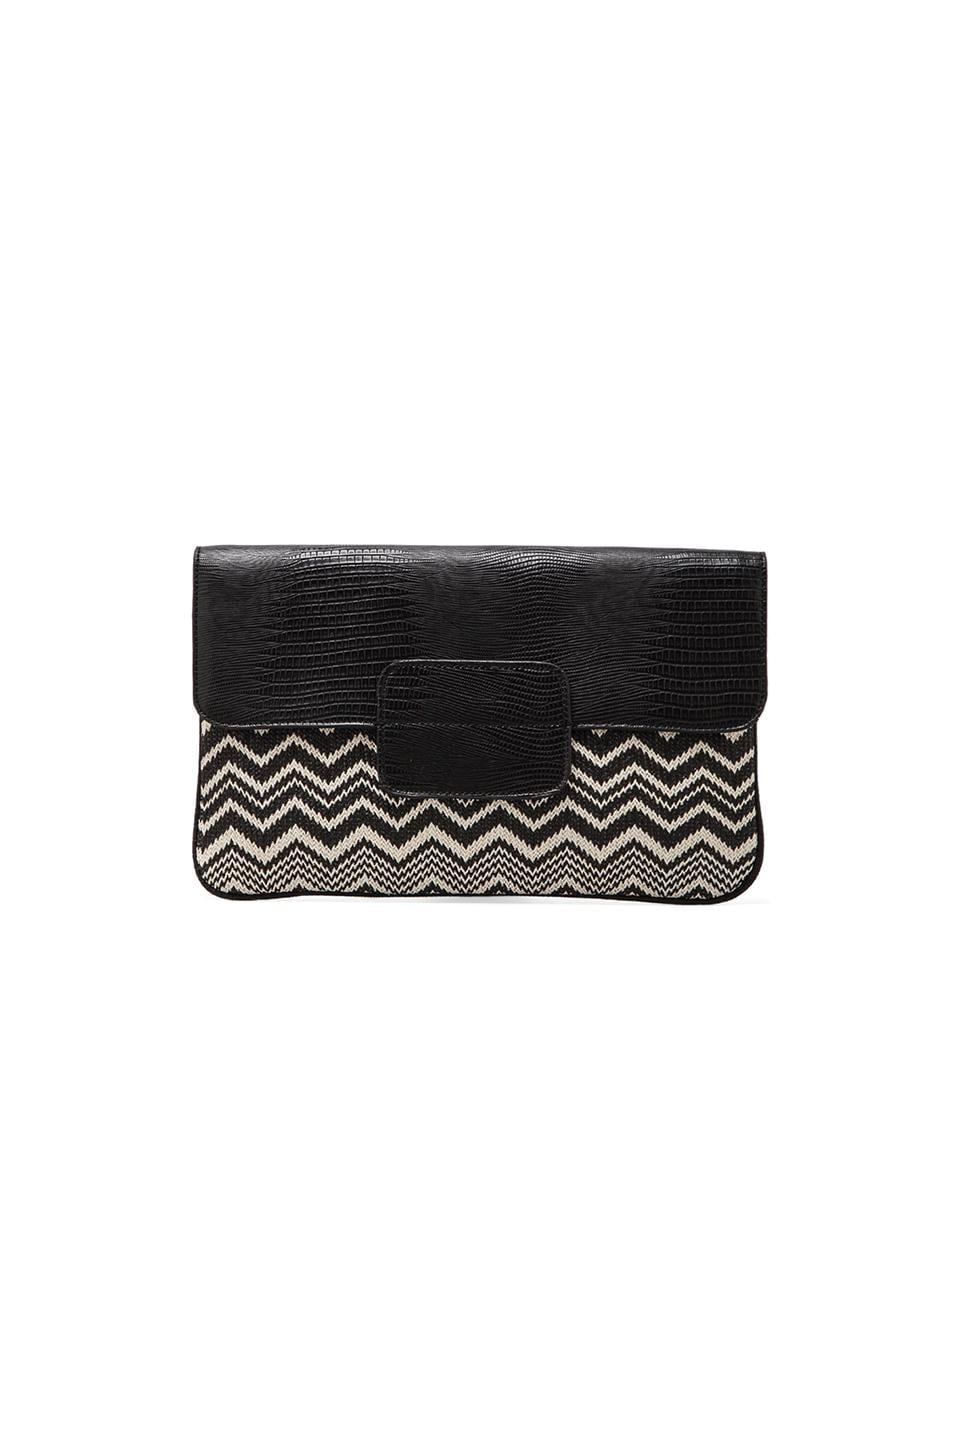 BCBGMAXAZRIA Leyla Straw Raffia Clutch in Black